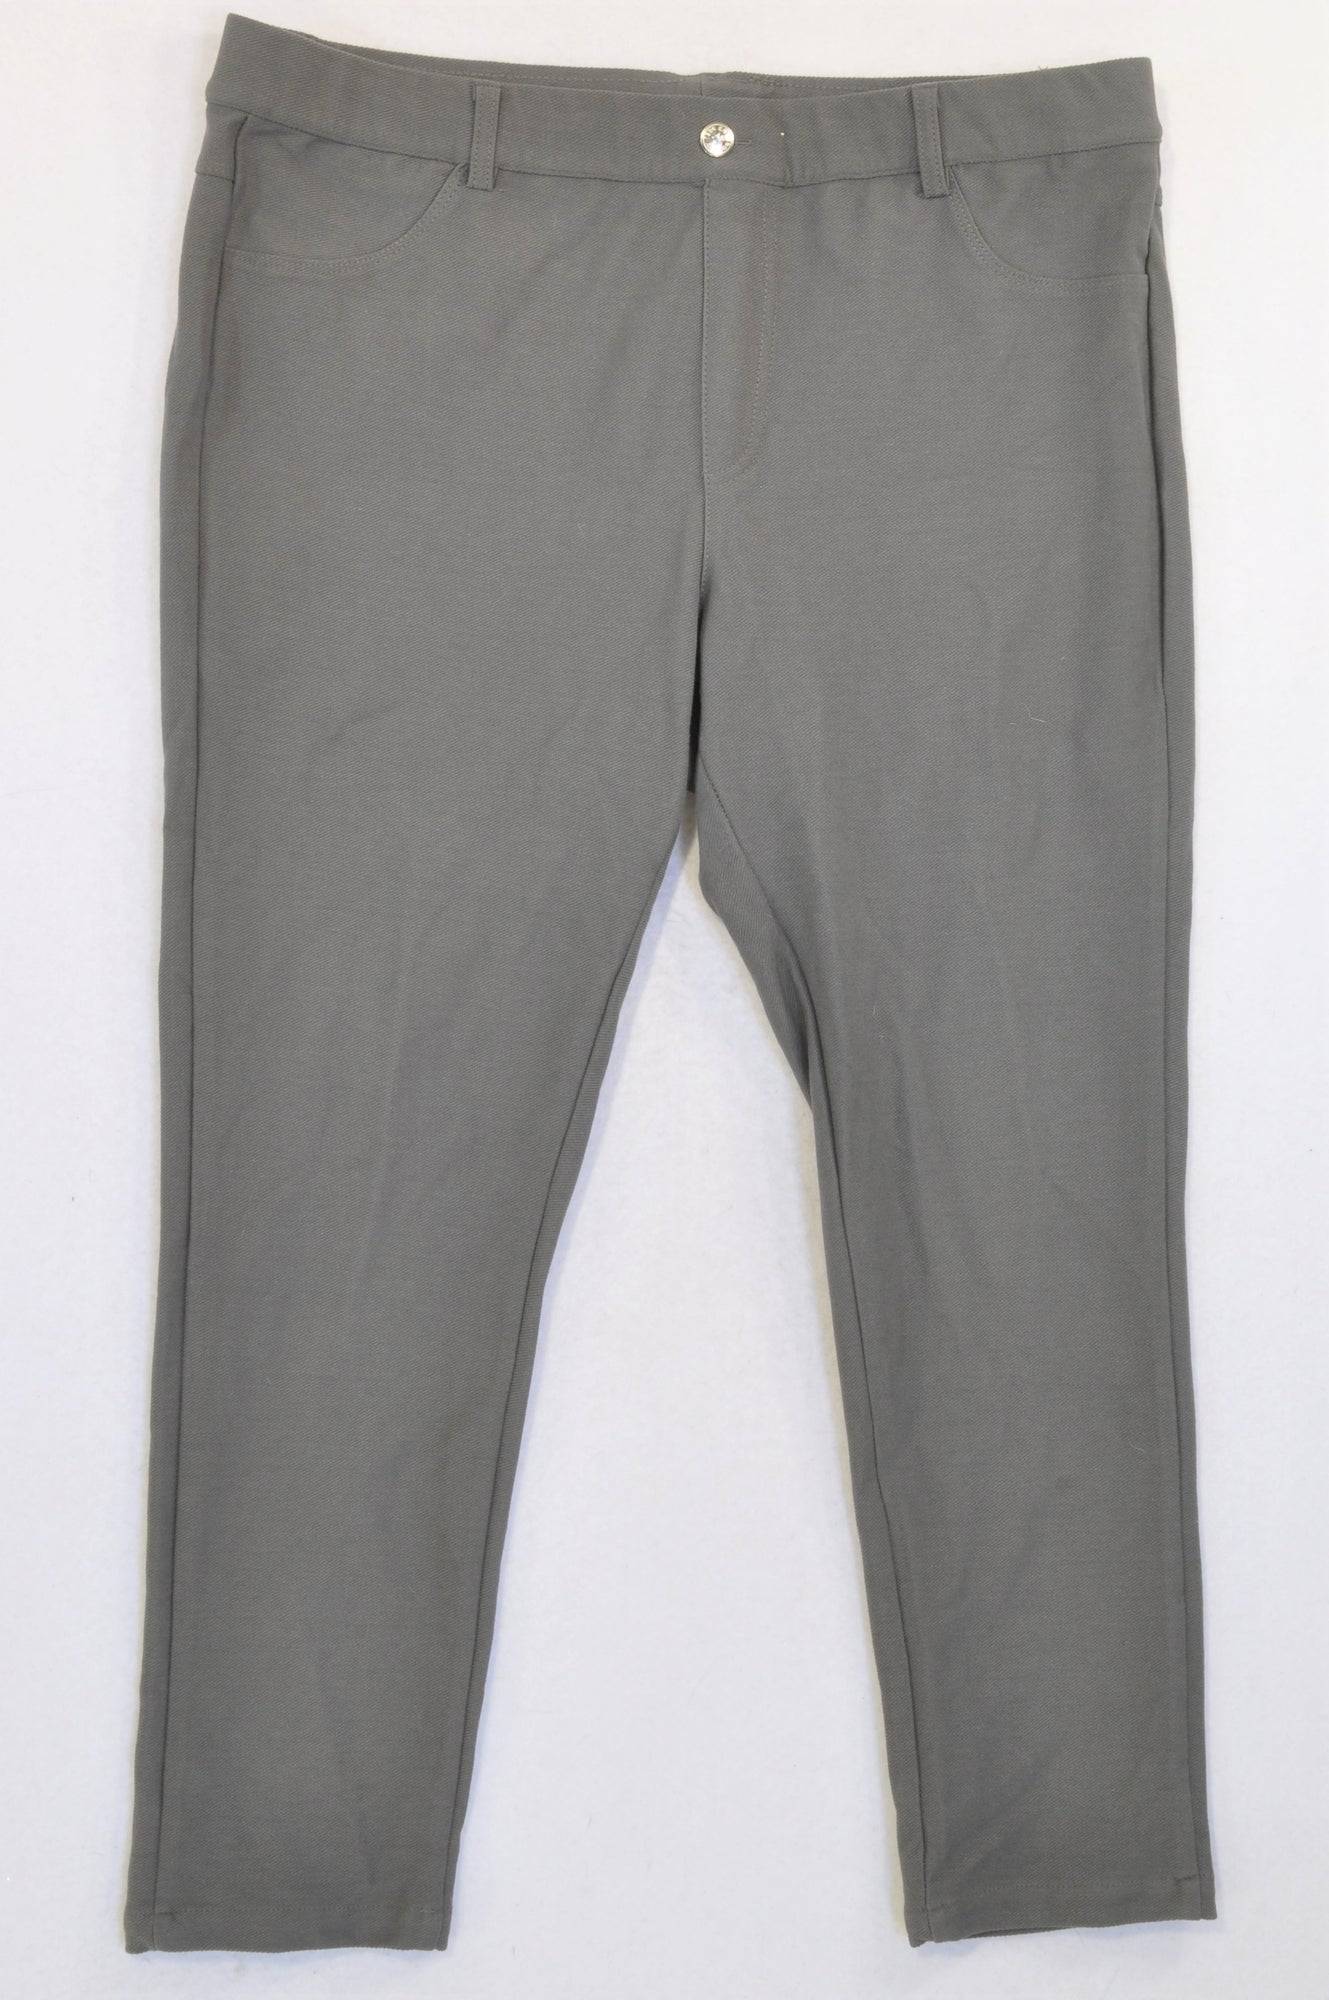 New Pick 'n Pay Grey Textured 3/4 Jeggings Women Size 16